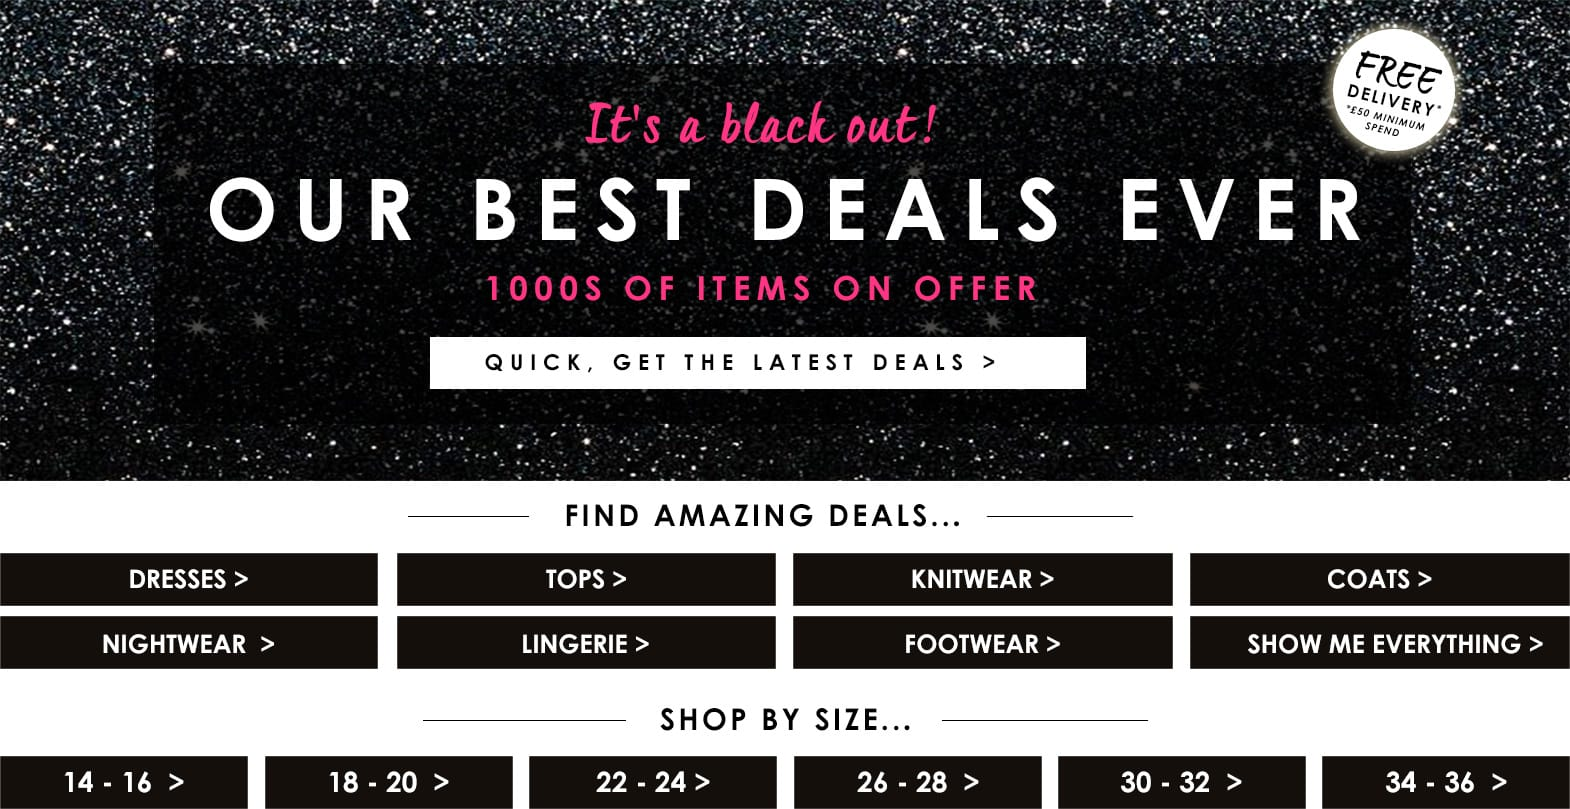 Our Best deals ever - 1000's of items on offer >